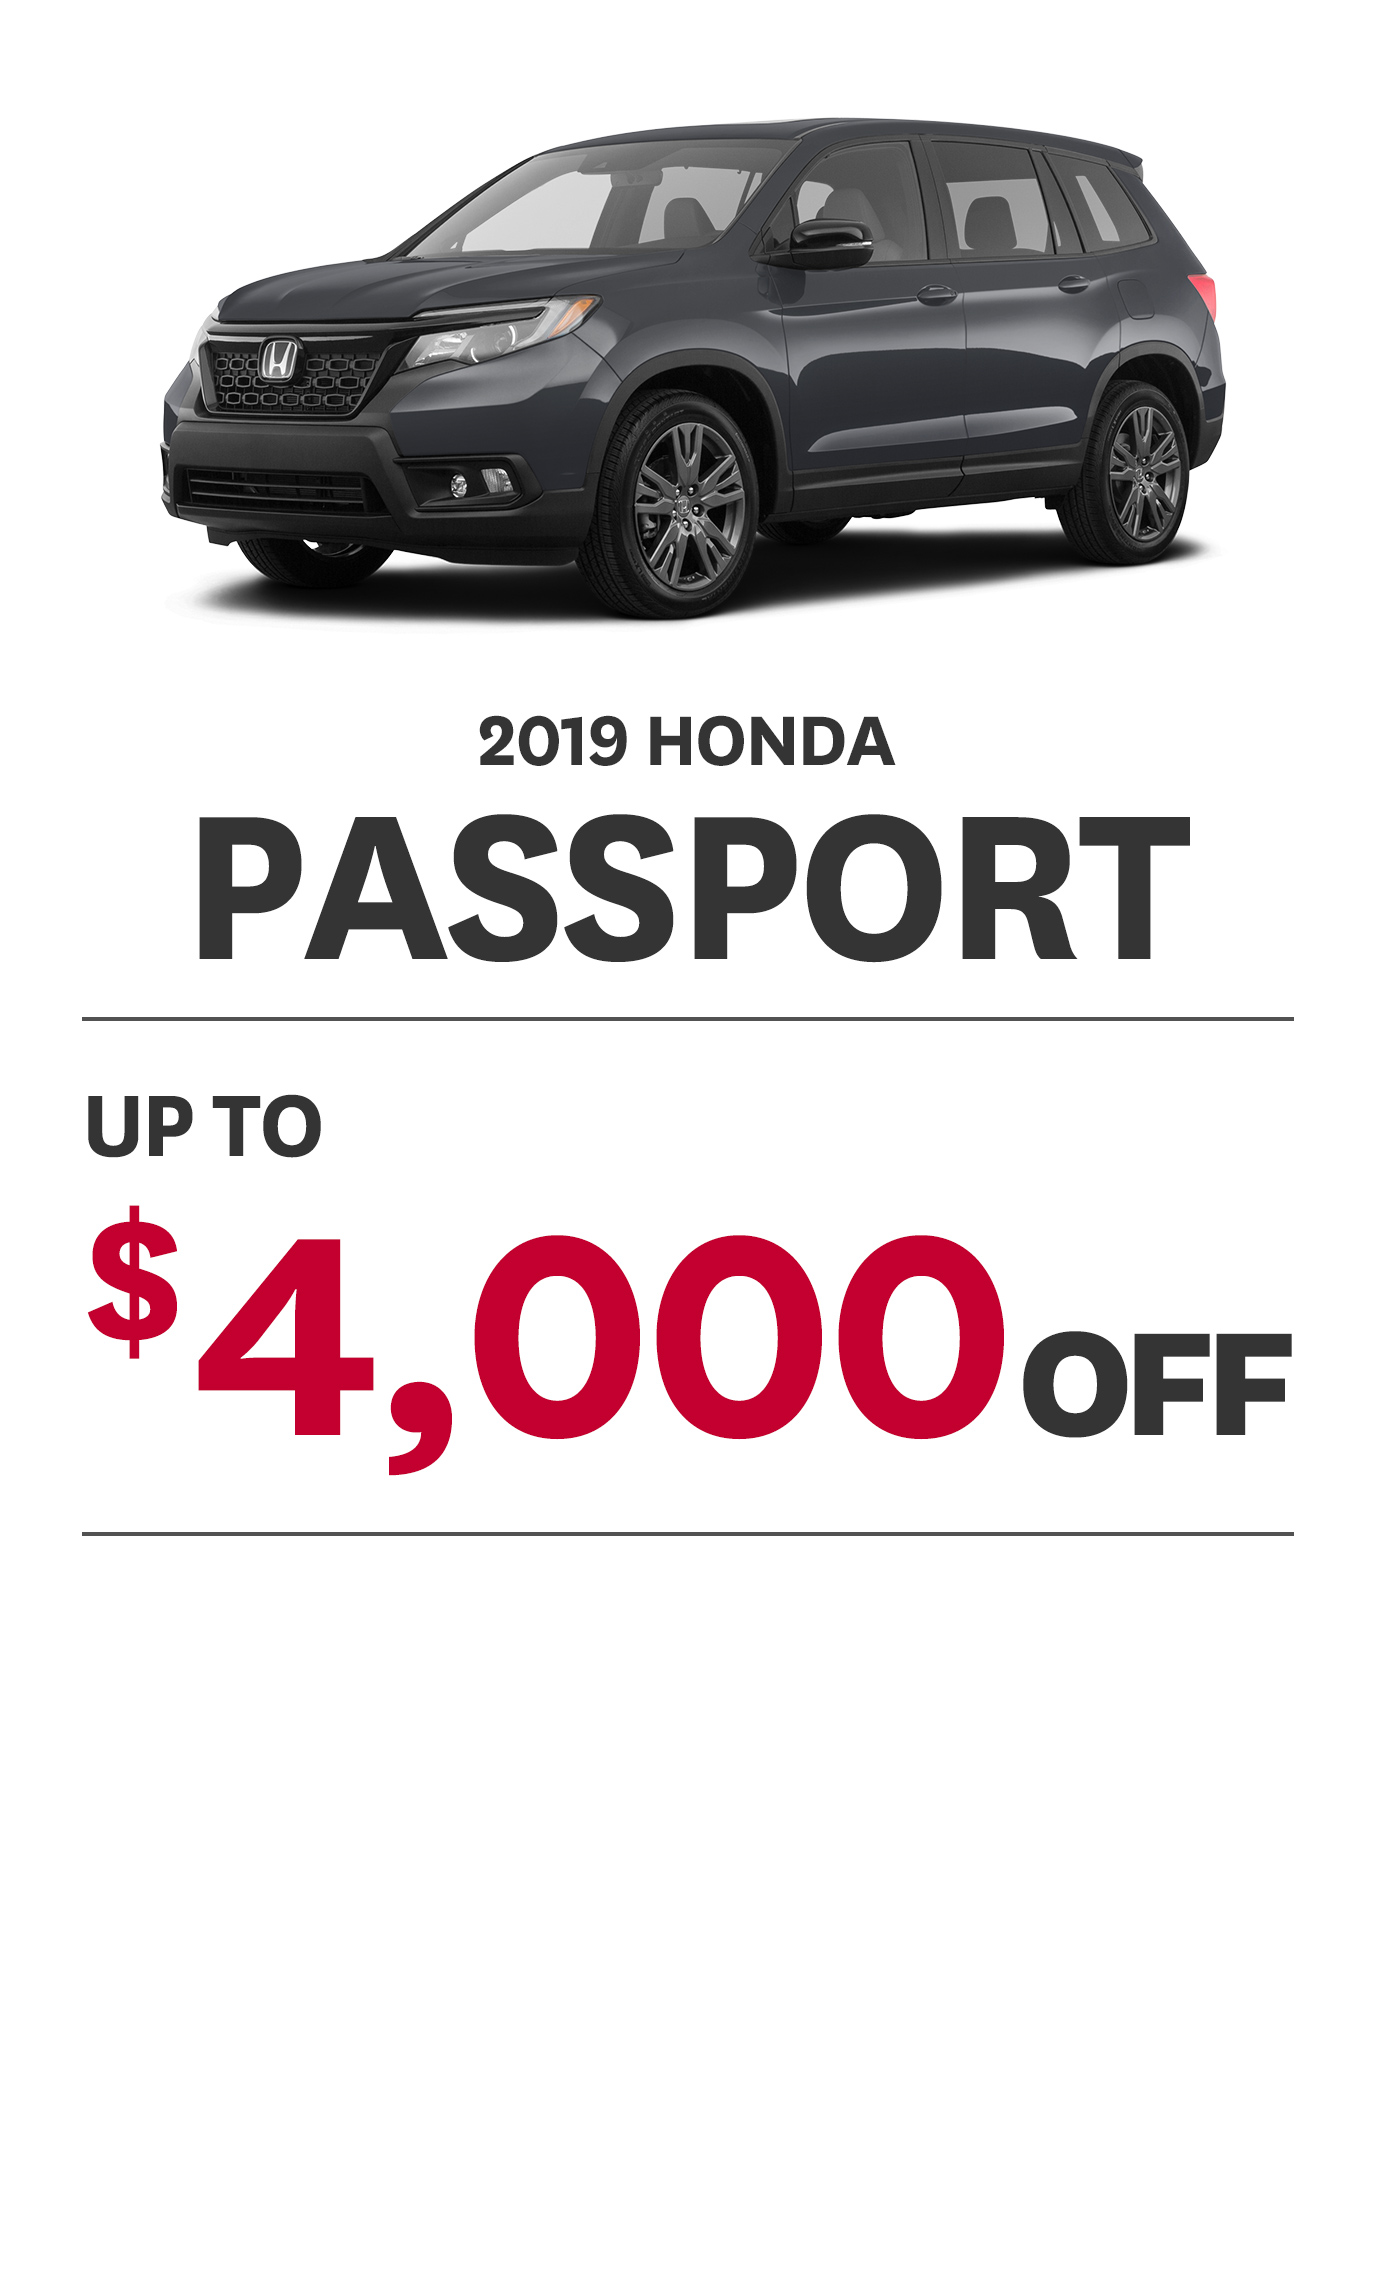 2019 Passport Offer